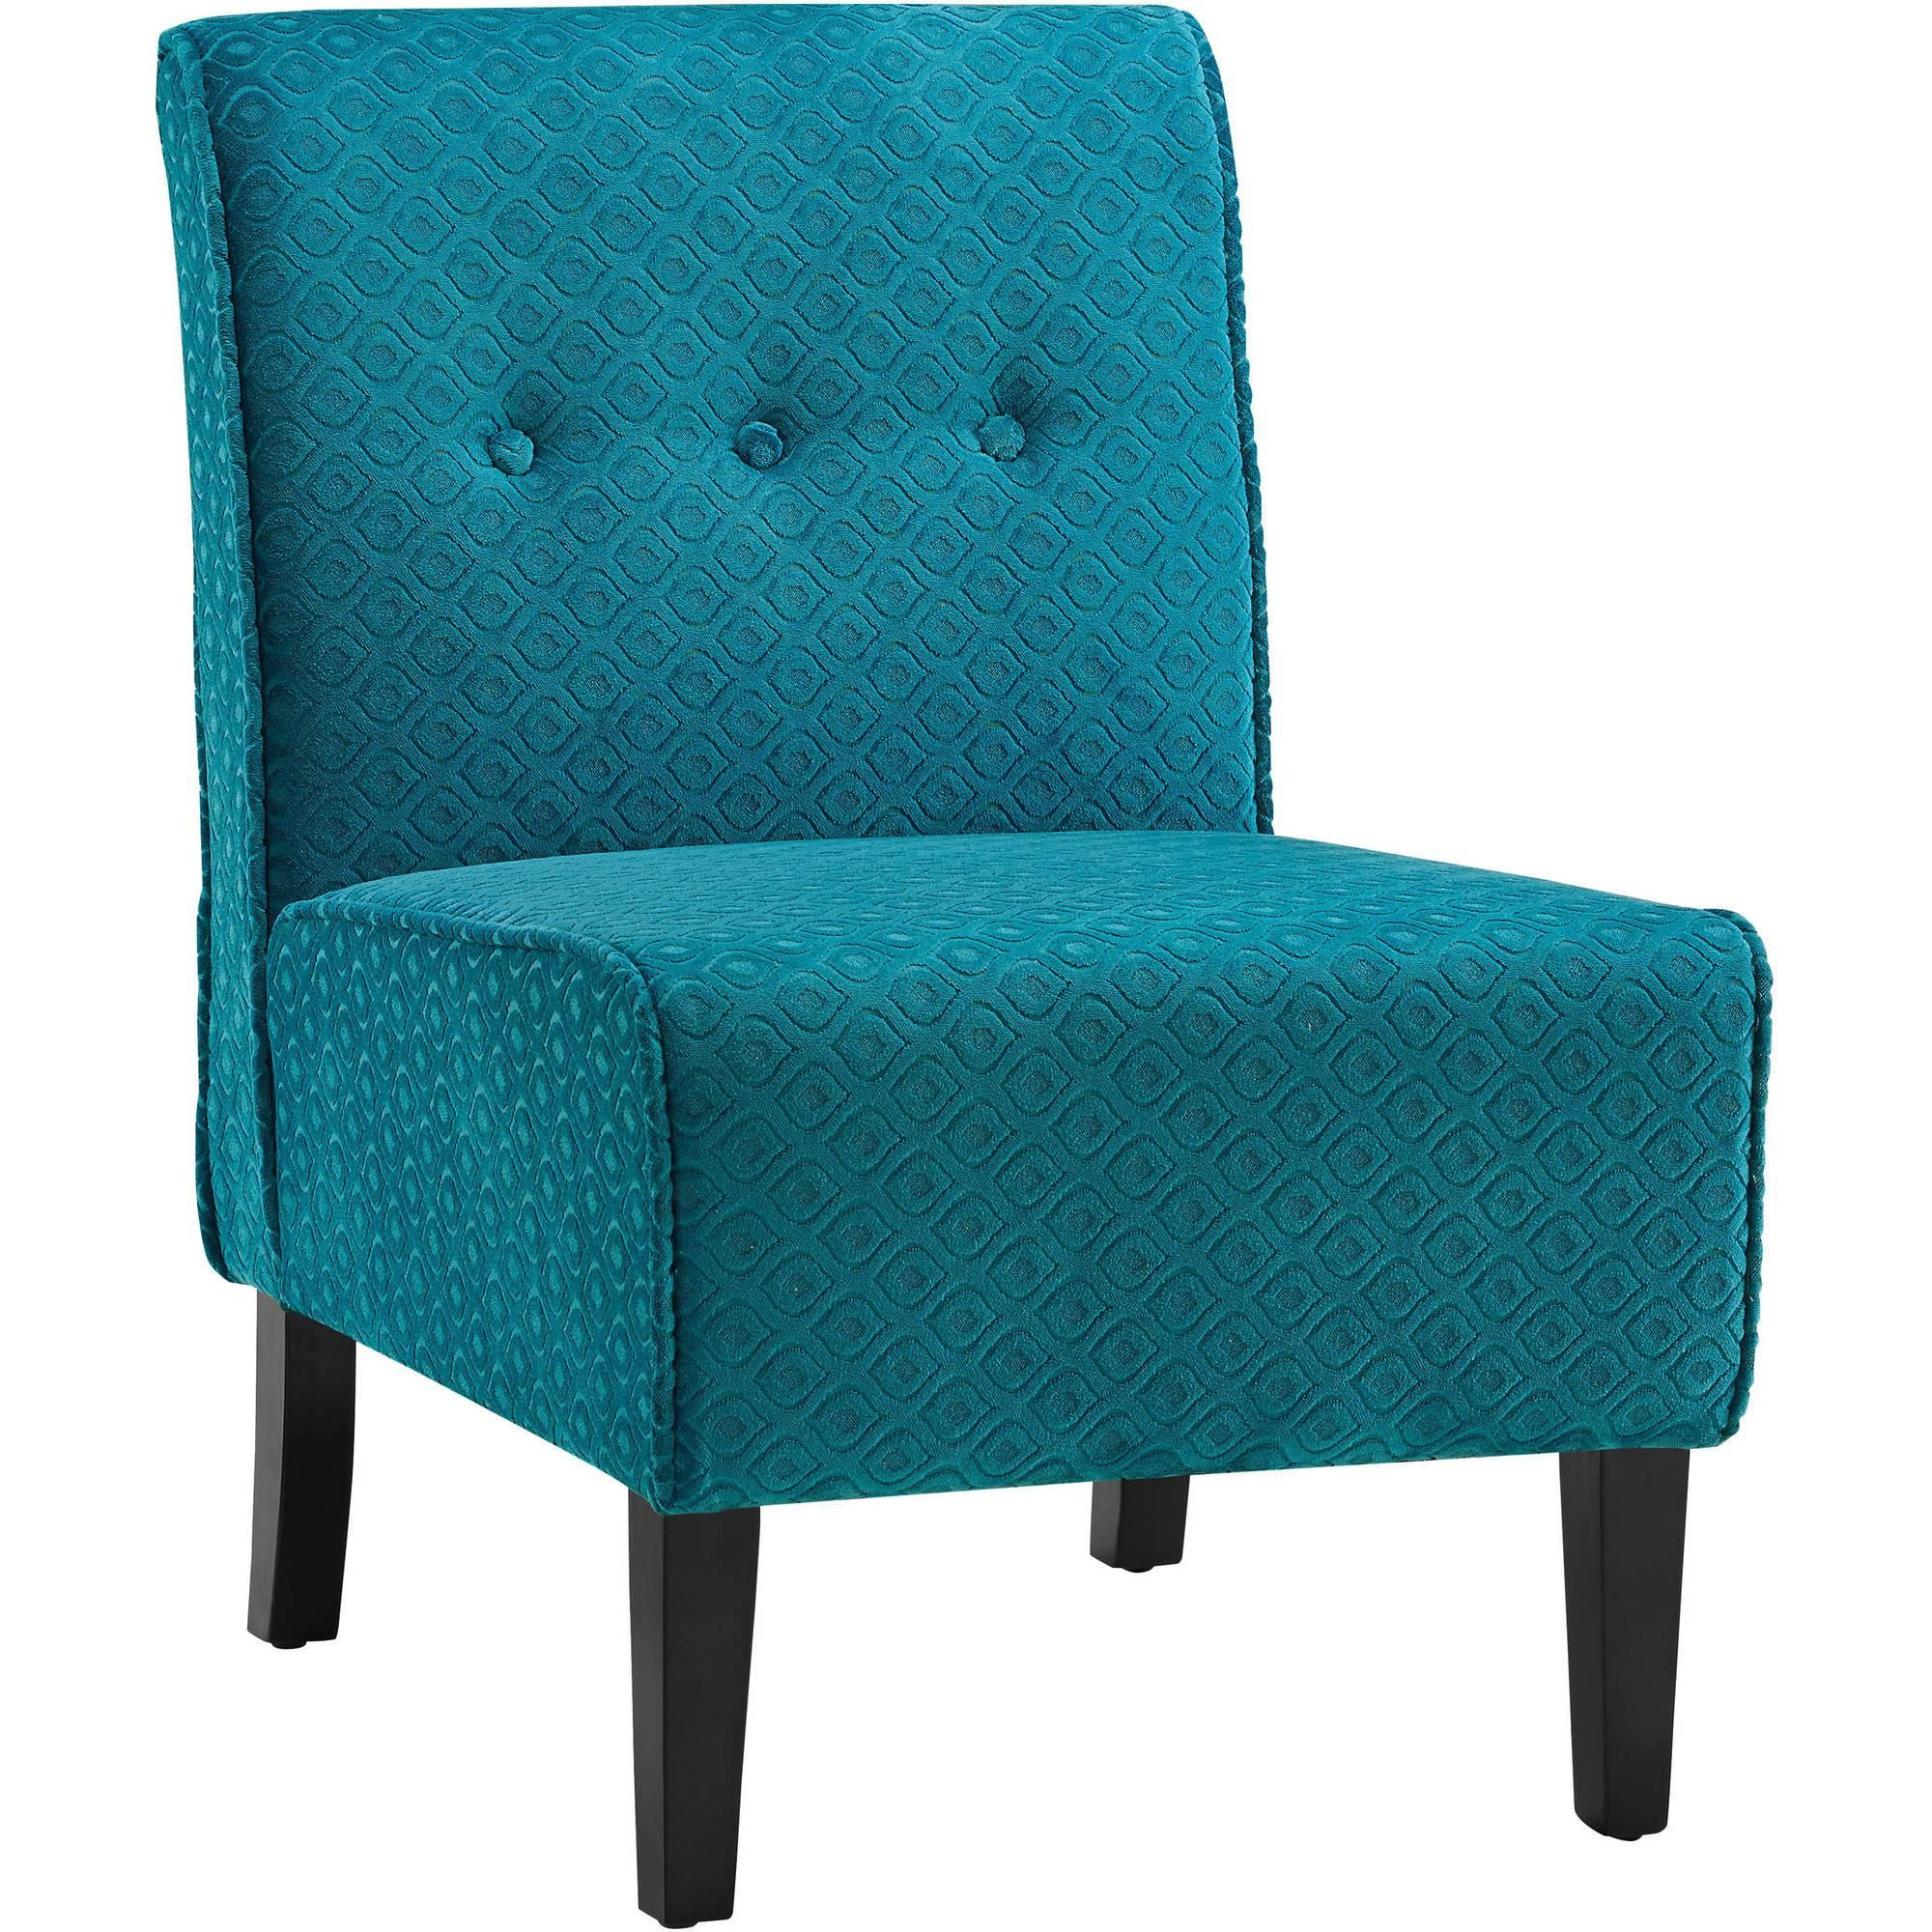 Best Coco Teal Blue Accent Chair Blue Accent Chairs Teal 400 x 300